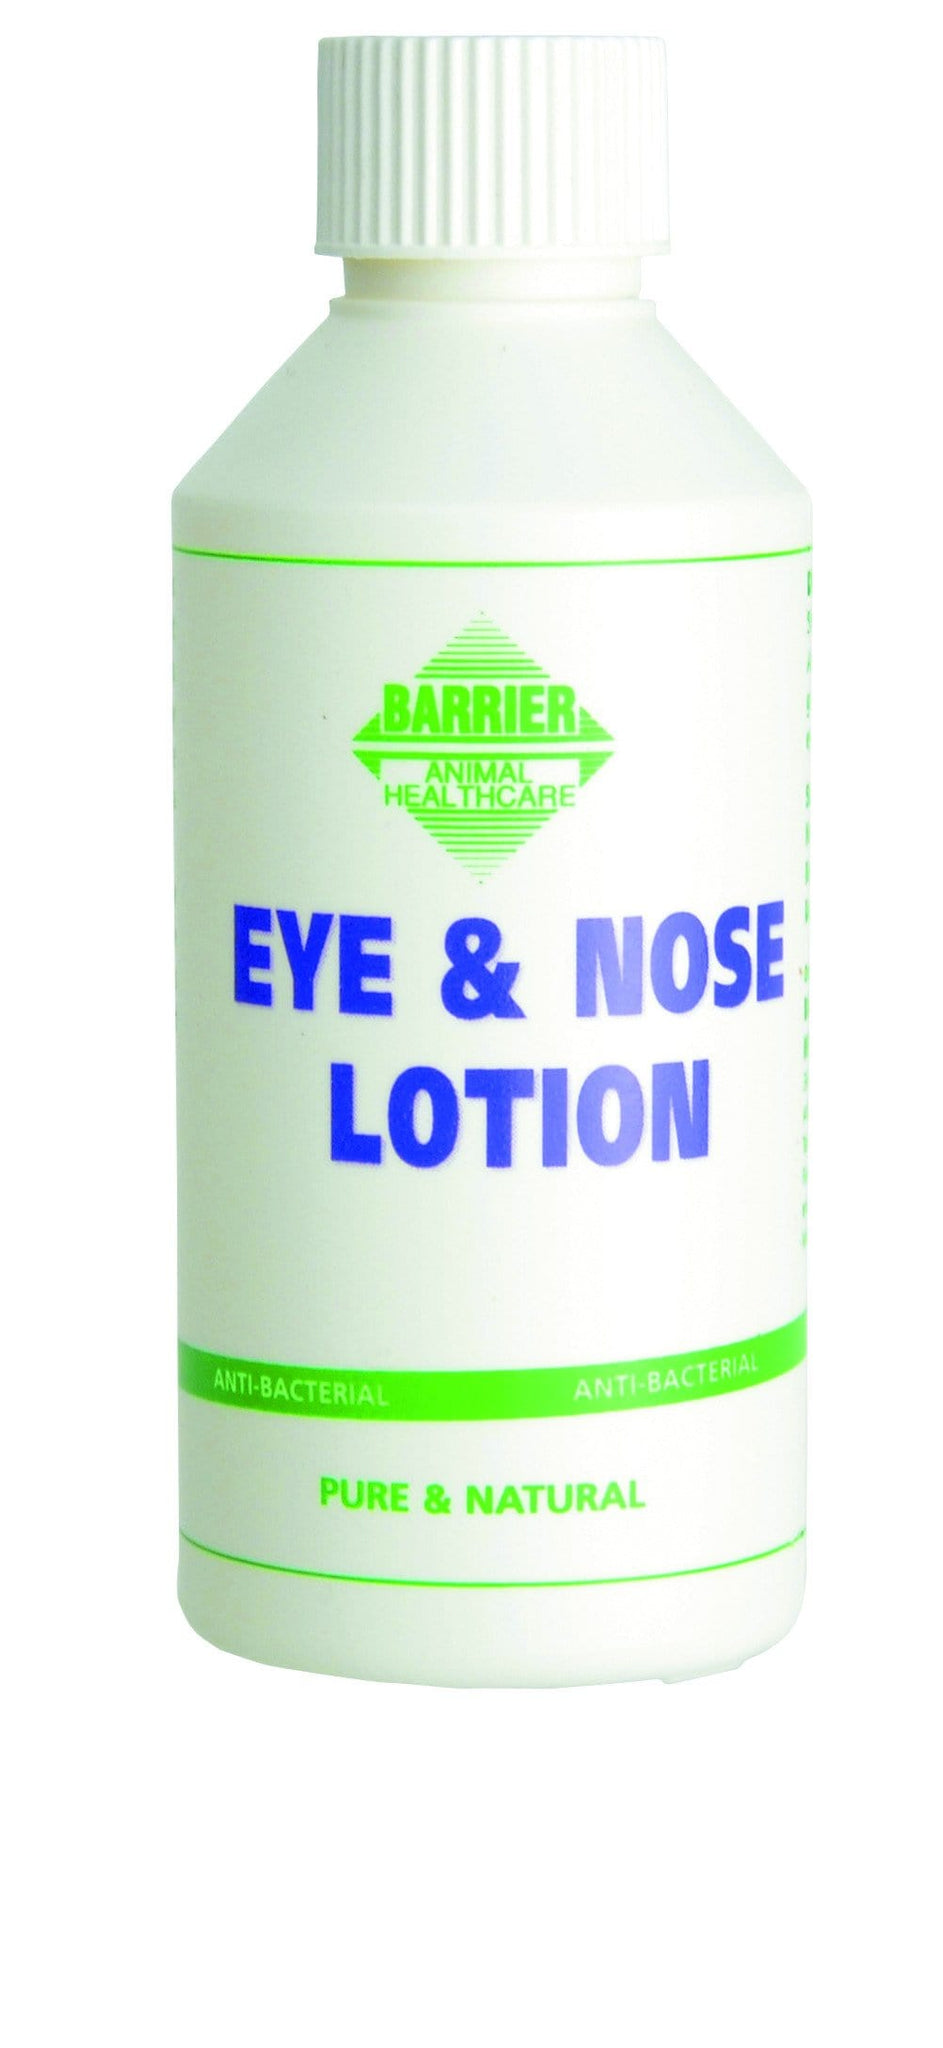 Barrier Anti-Bacterial Eye & Nose Lotion 8414